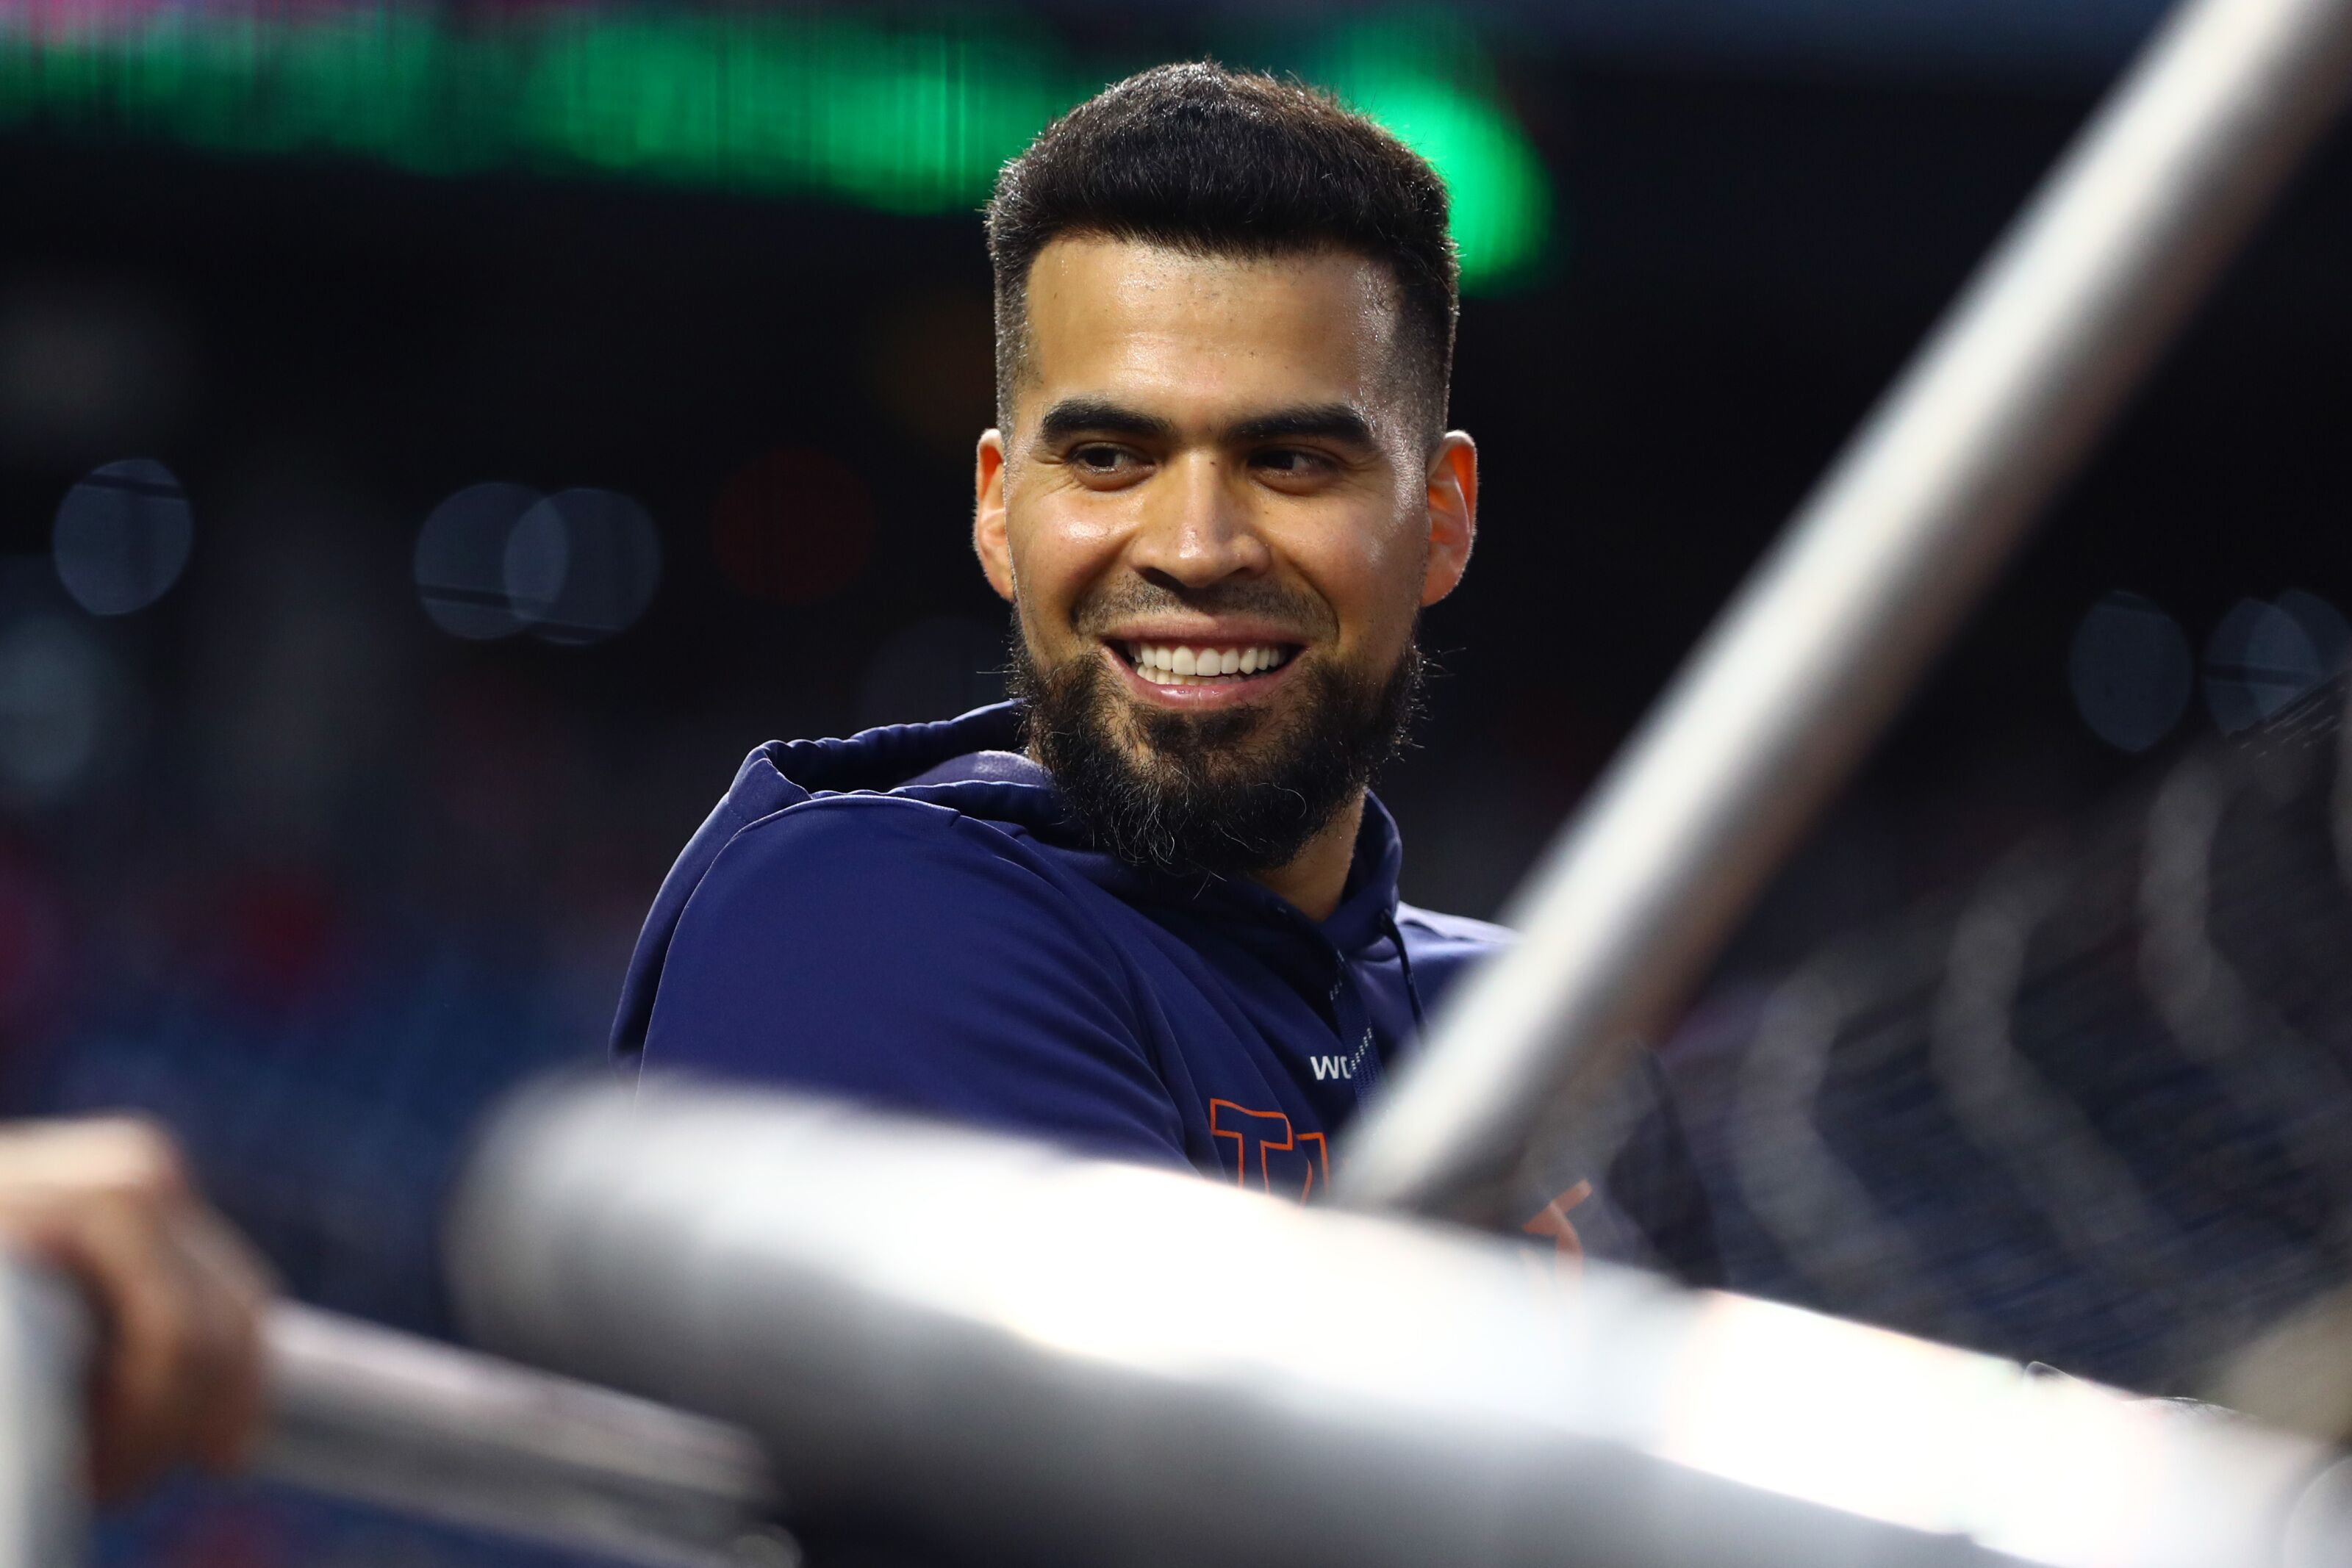 Houston Astros have expressed interest to bring Robinson Chirinos back